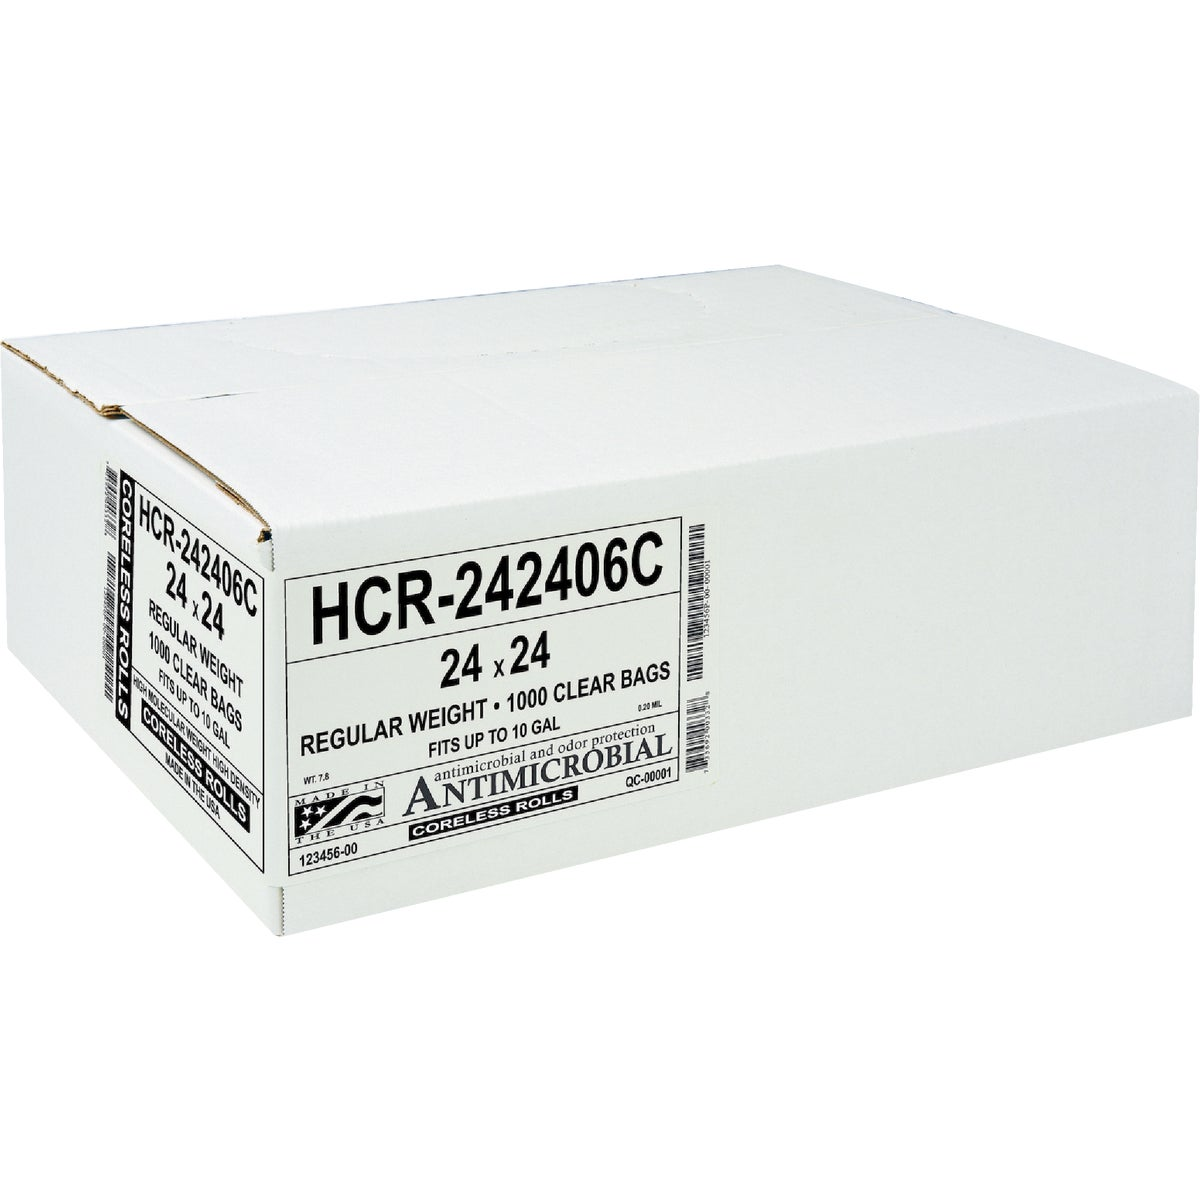 1000CT 24X24 CAN LINER - HC-242406C by Aluf Plastics Incom